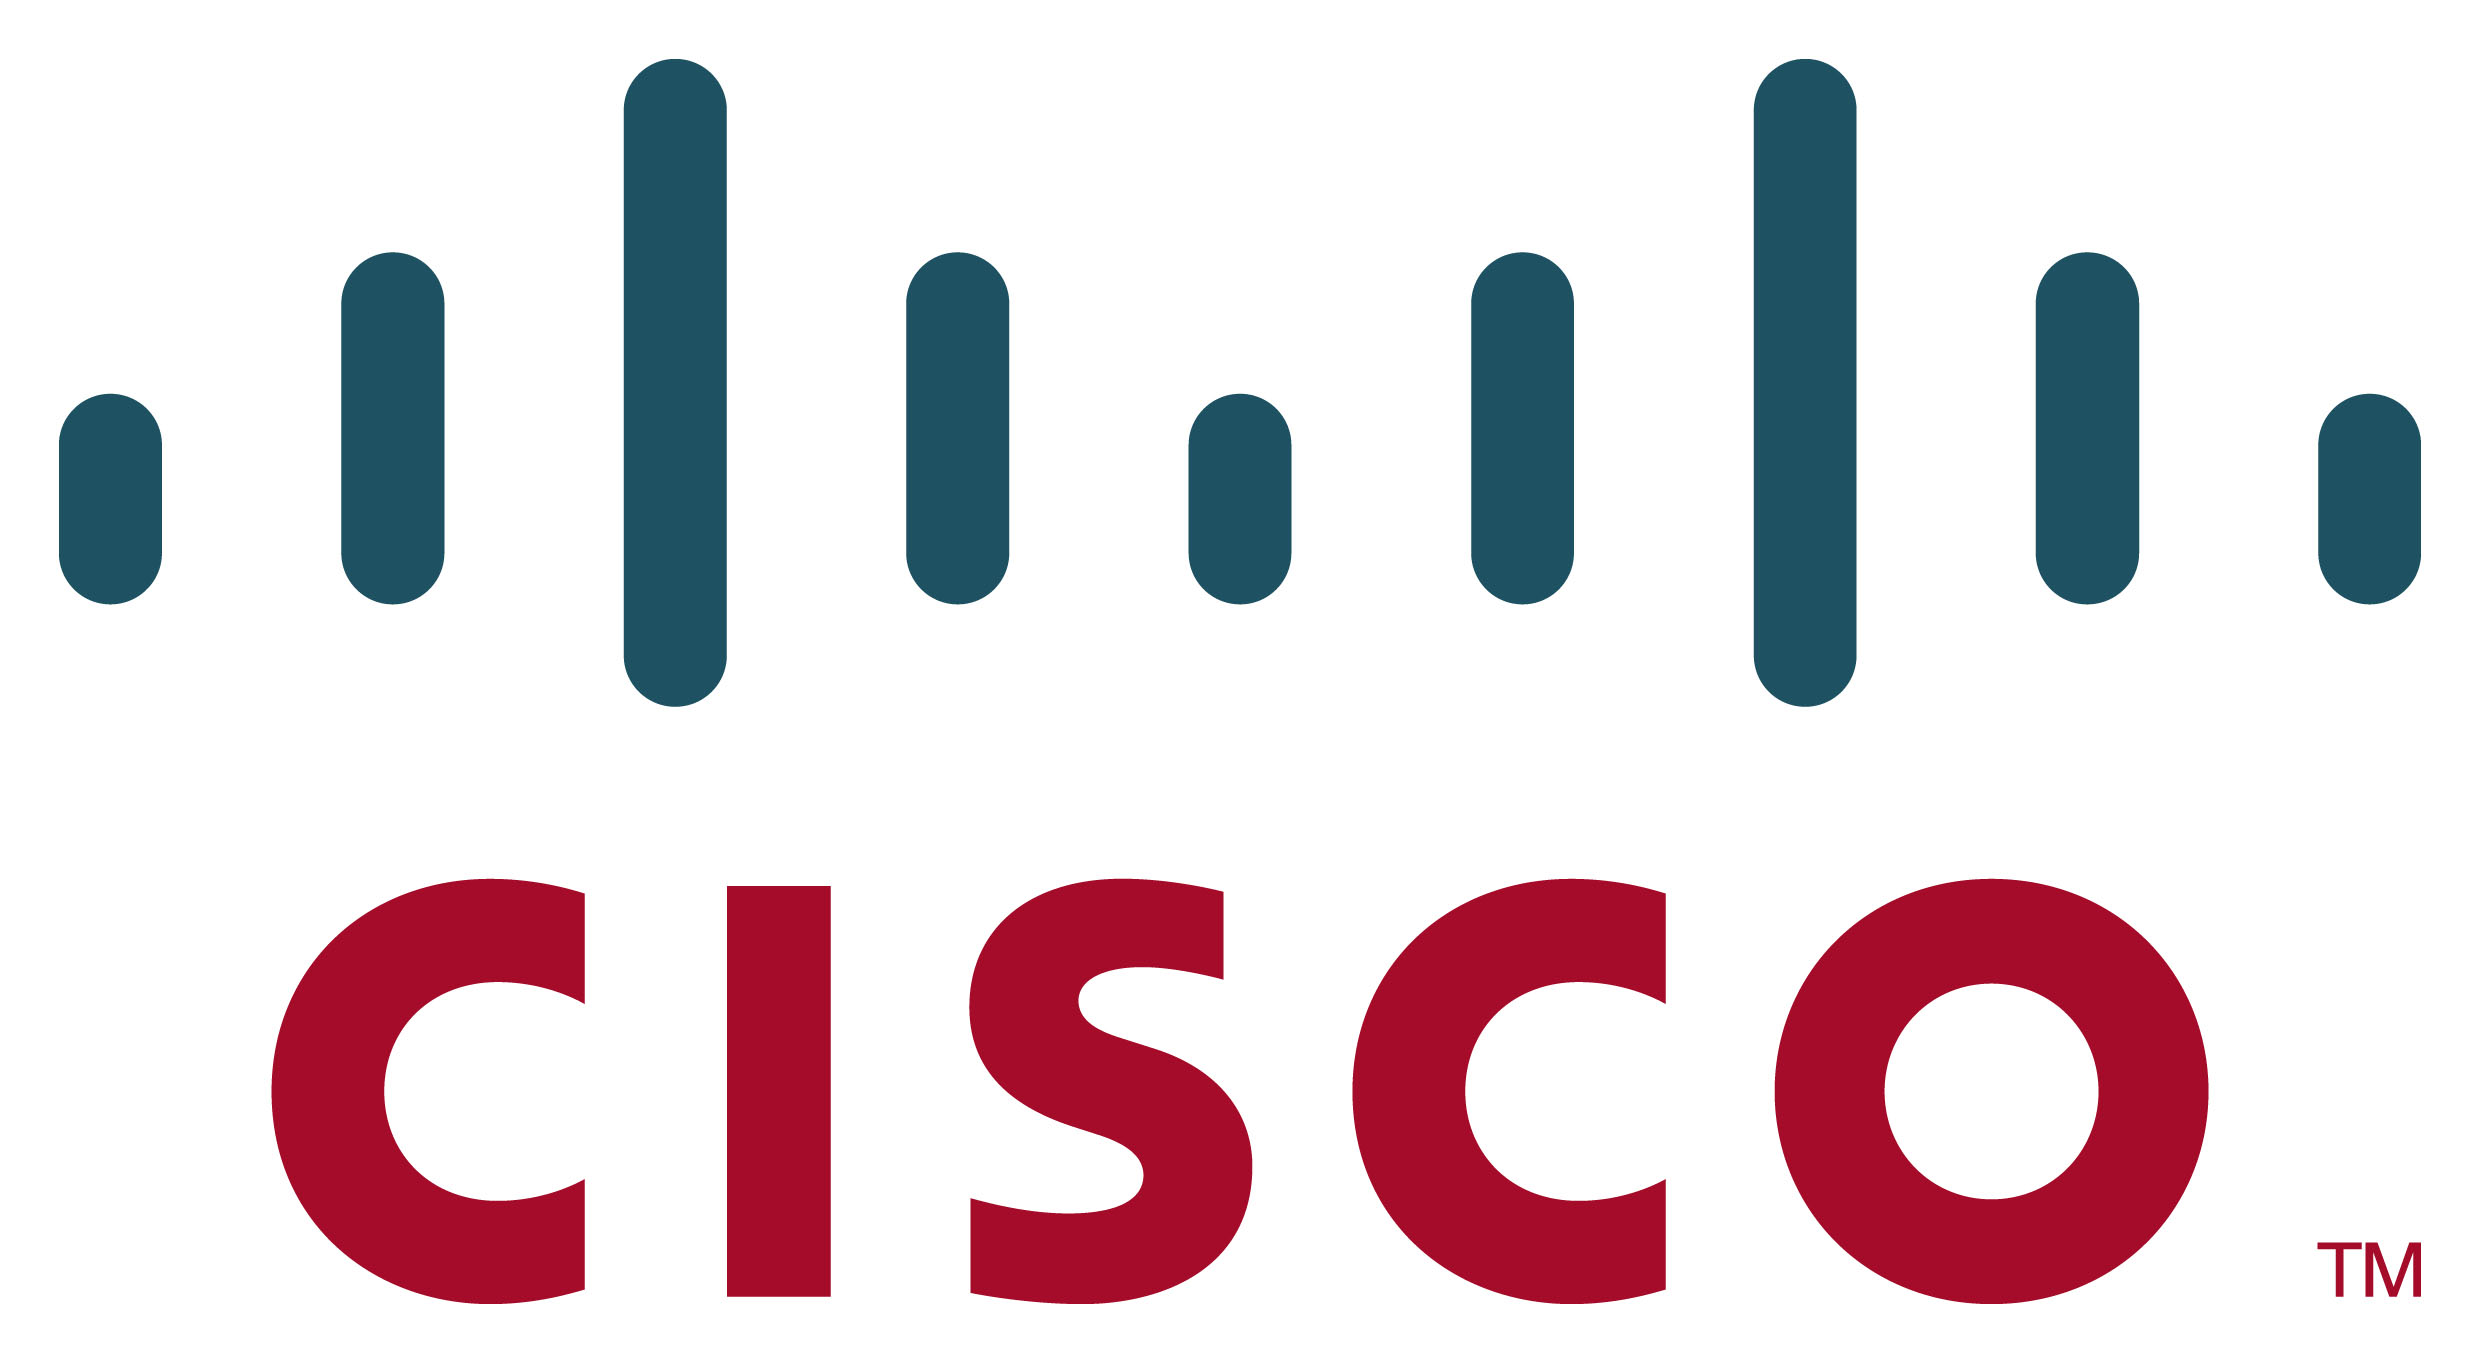 Cisco_Logo_CMYK_TM_2color.jpg